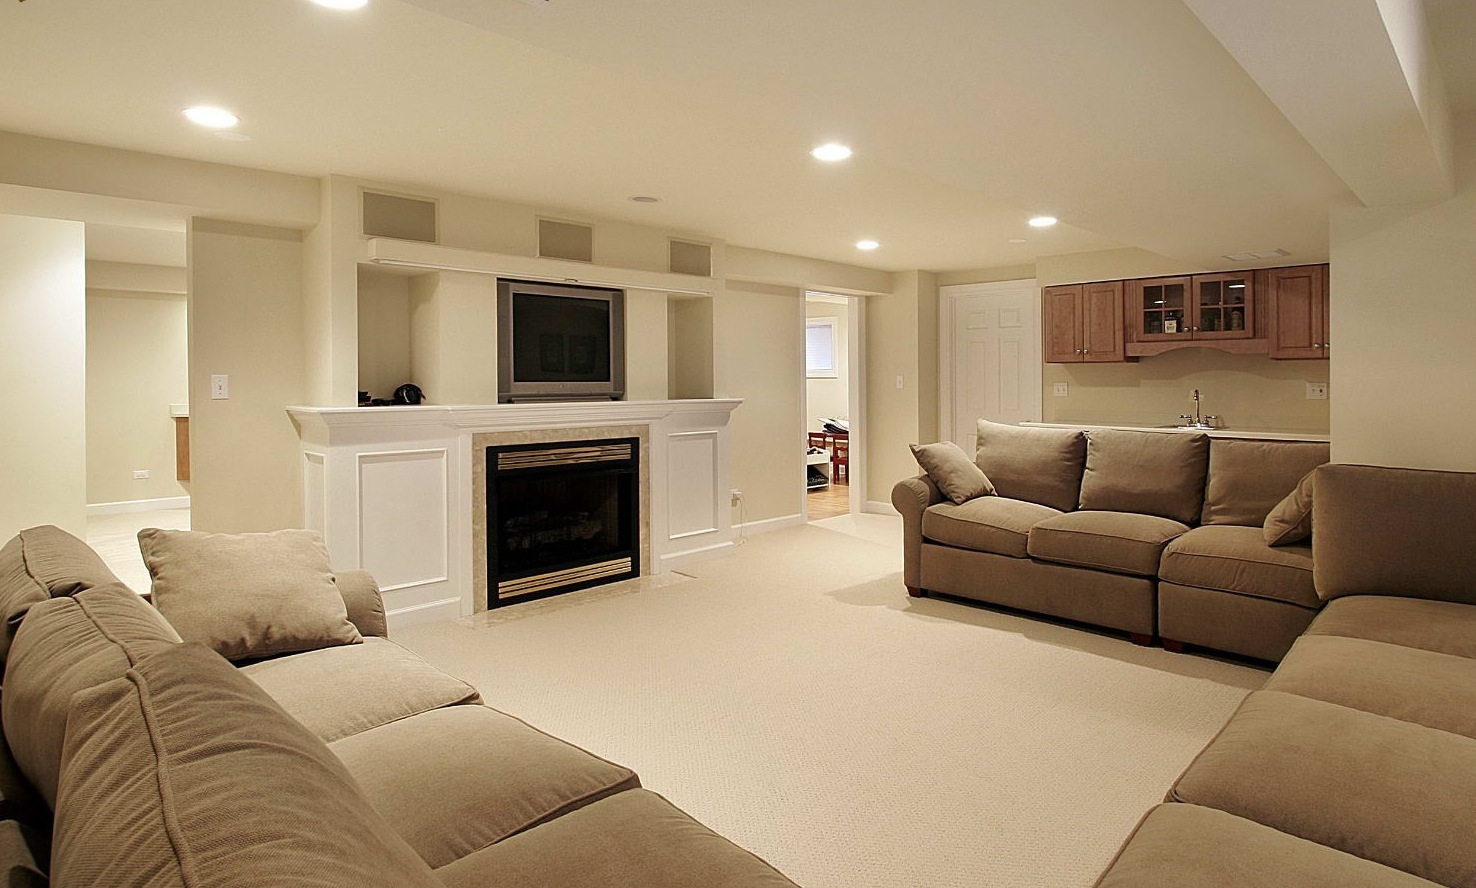 Home Renovation Ideas Living Room 30 Basement Remodeling Ideas & Inspiration